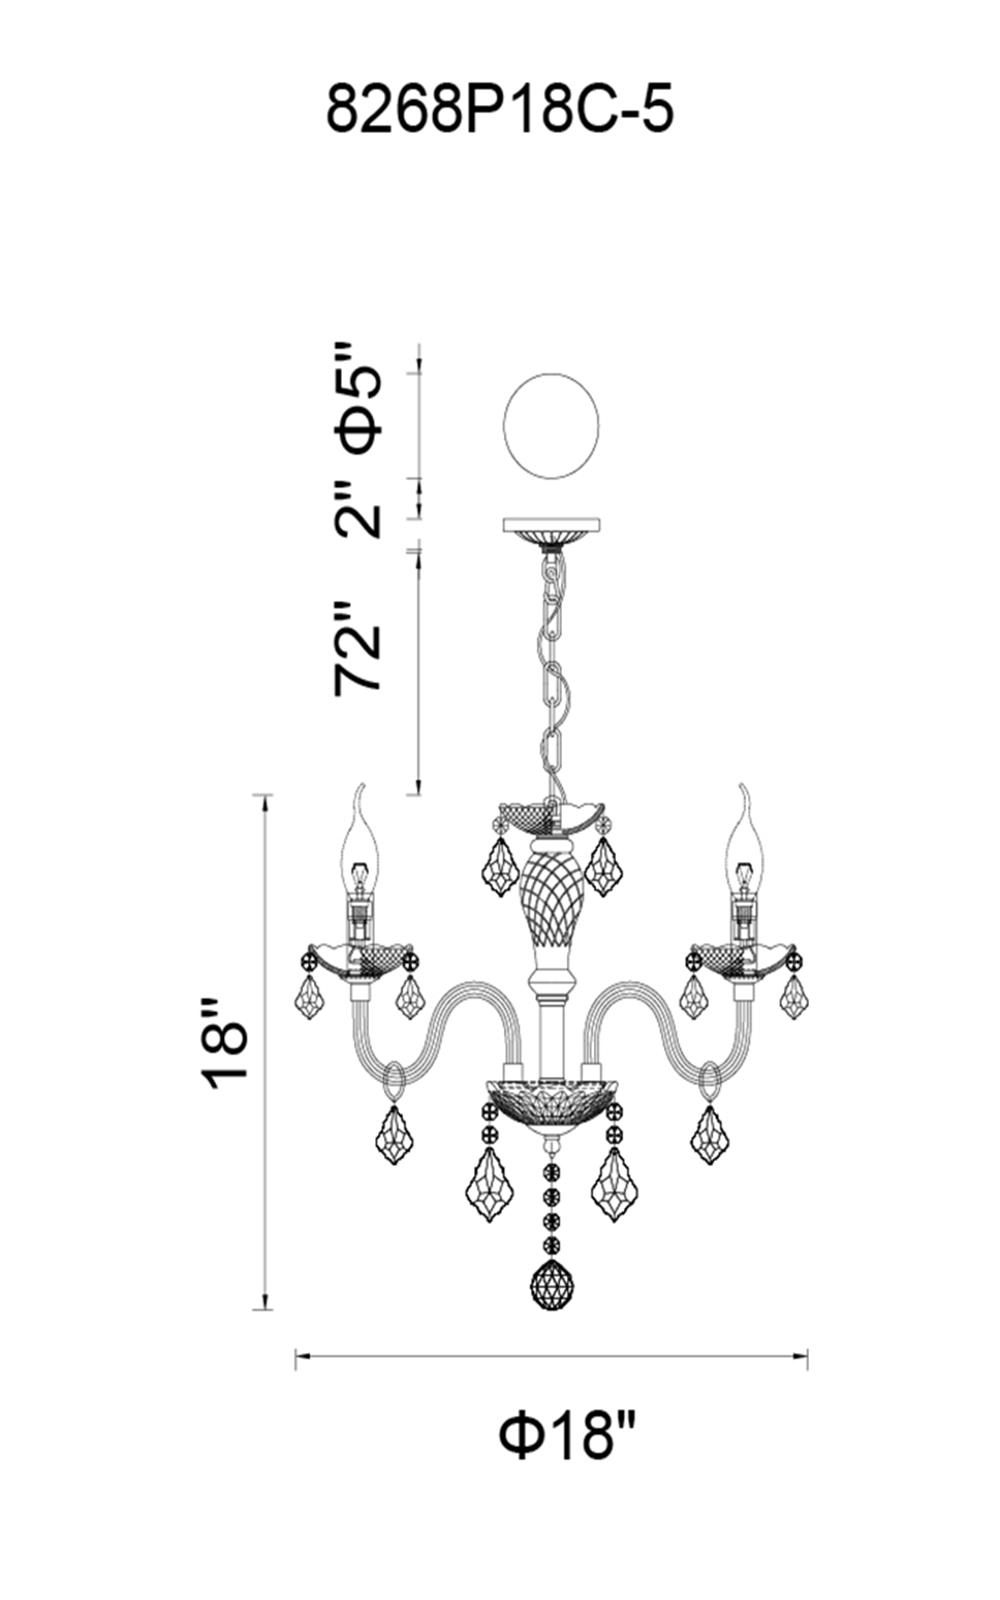 CWI Lighting Princeton 5 Light Up Chandelier With Chrome Finish Model: 8268P18C-5 (PINK) Line Drawing